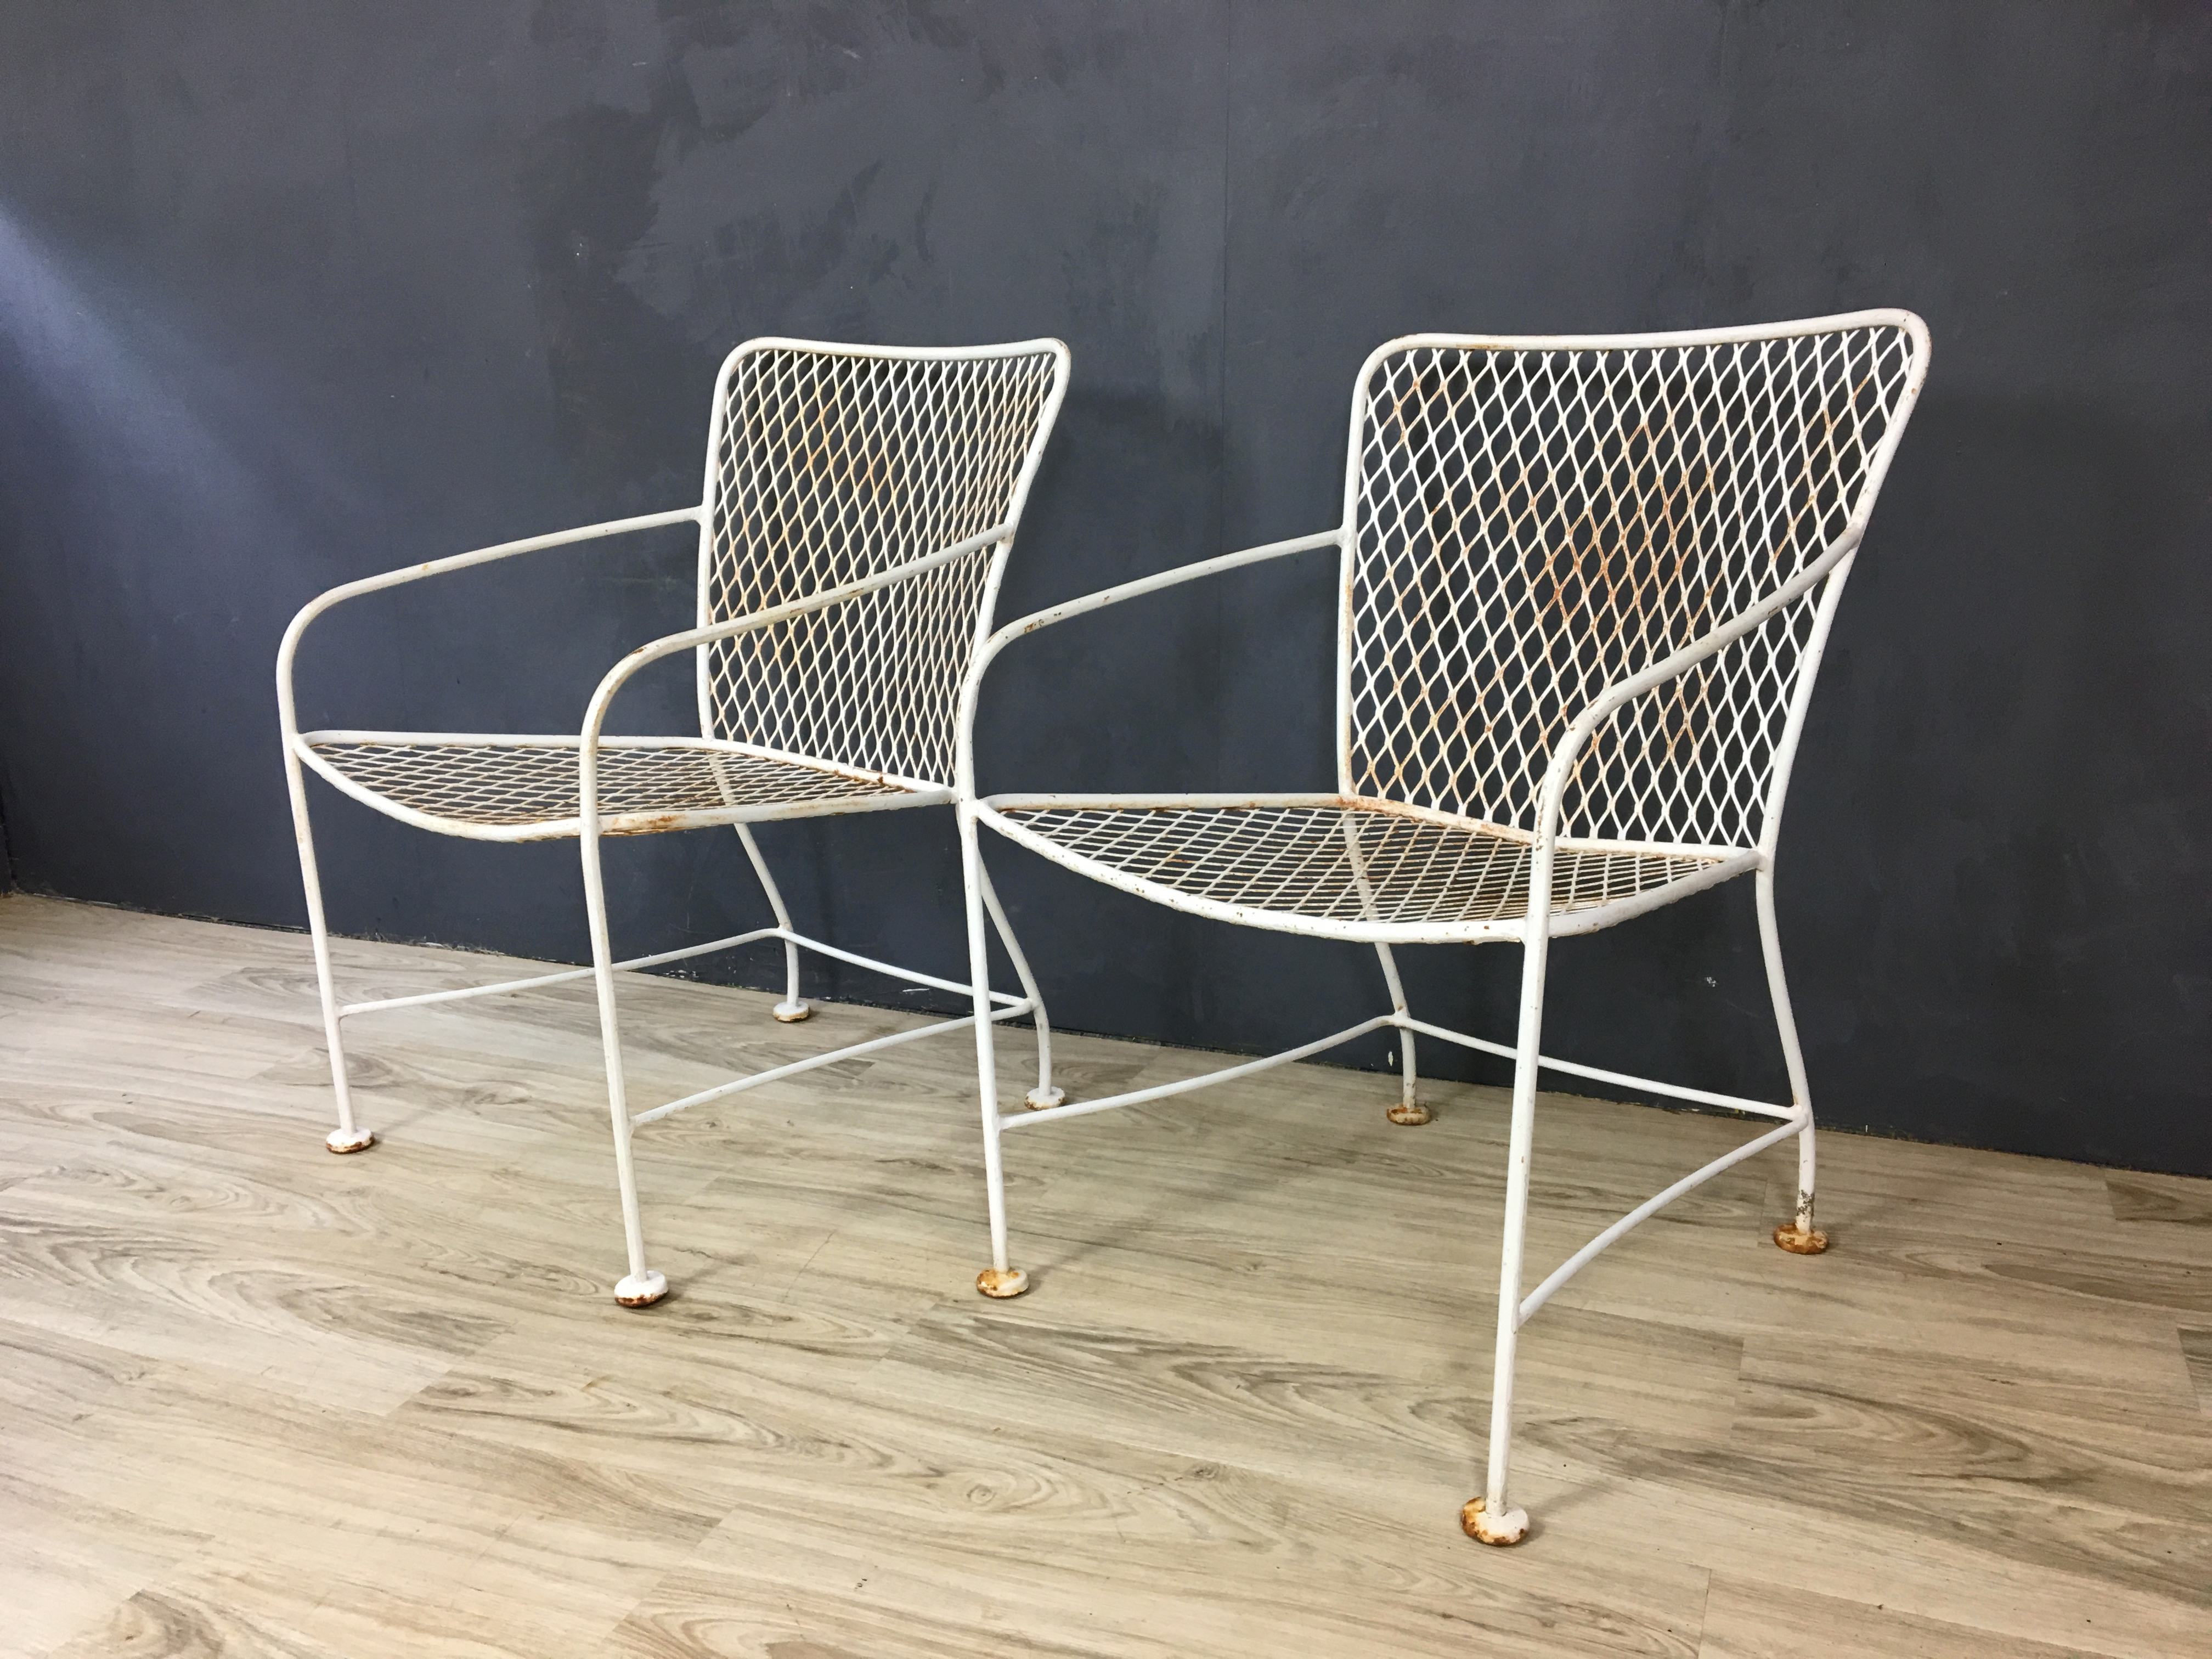 SALE - Iron Modernist Armchairs in Style of Van Keppel Green